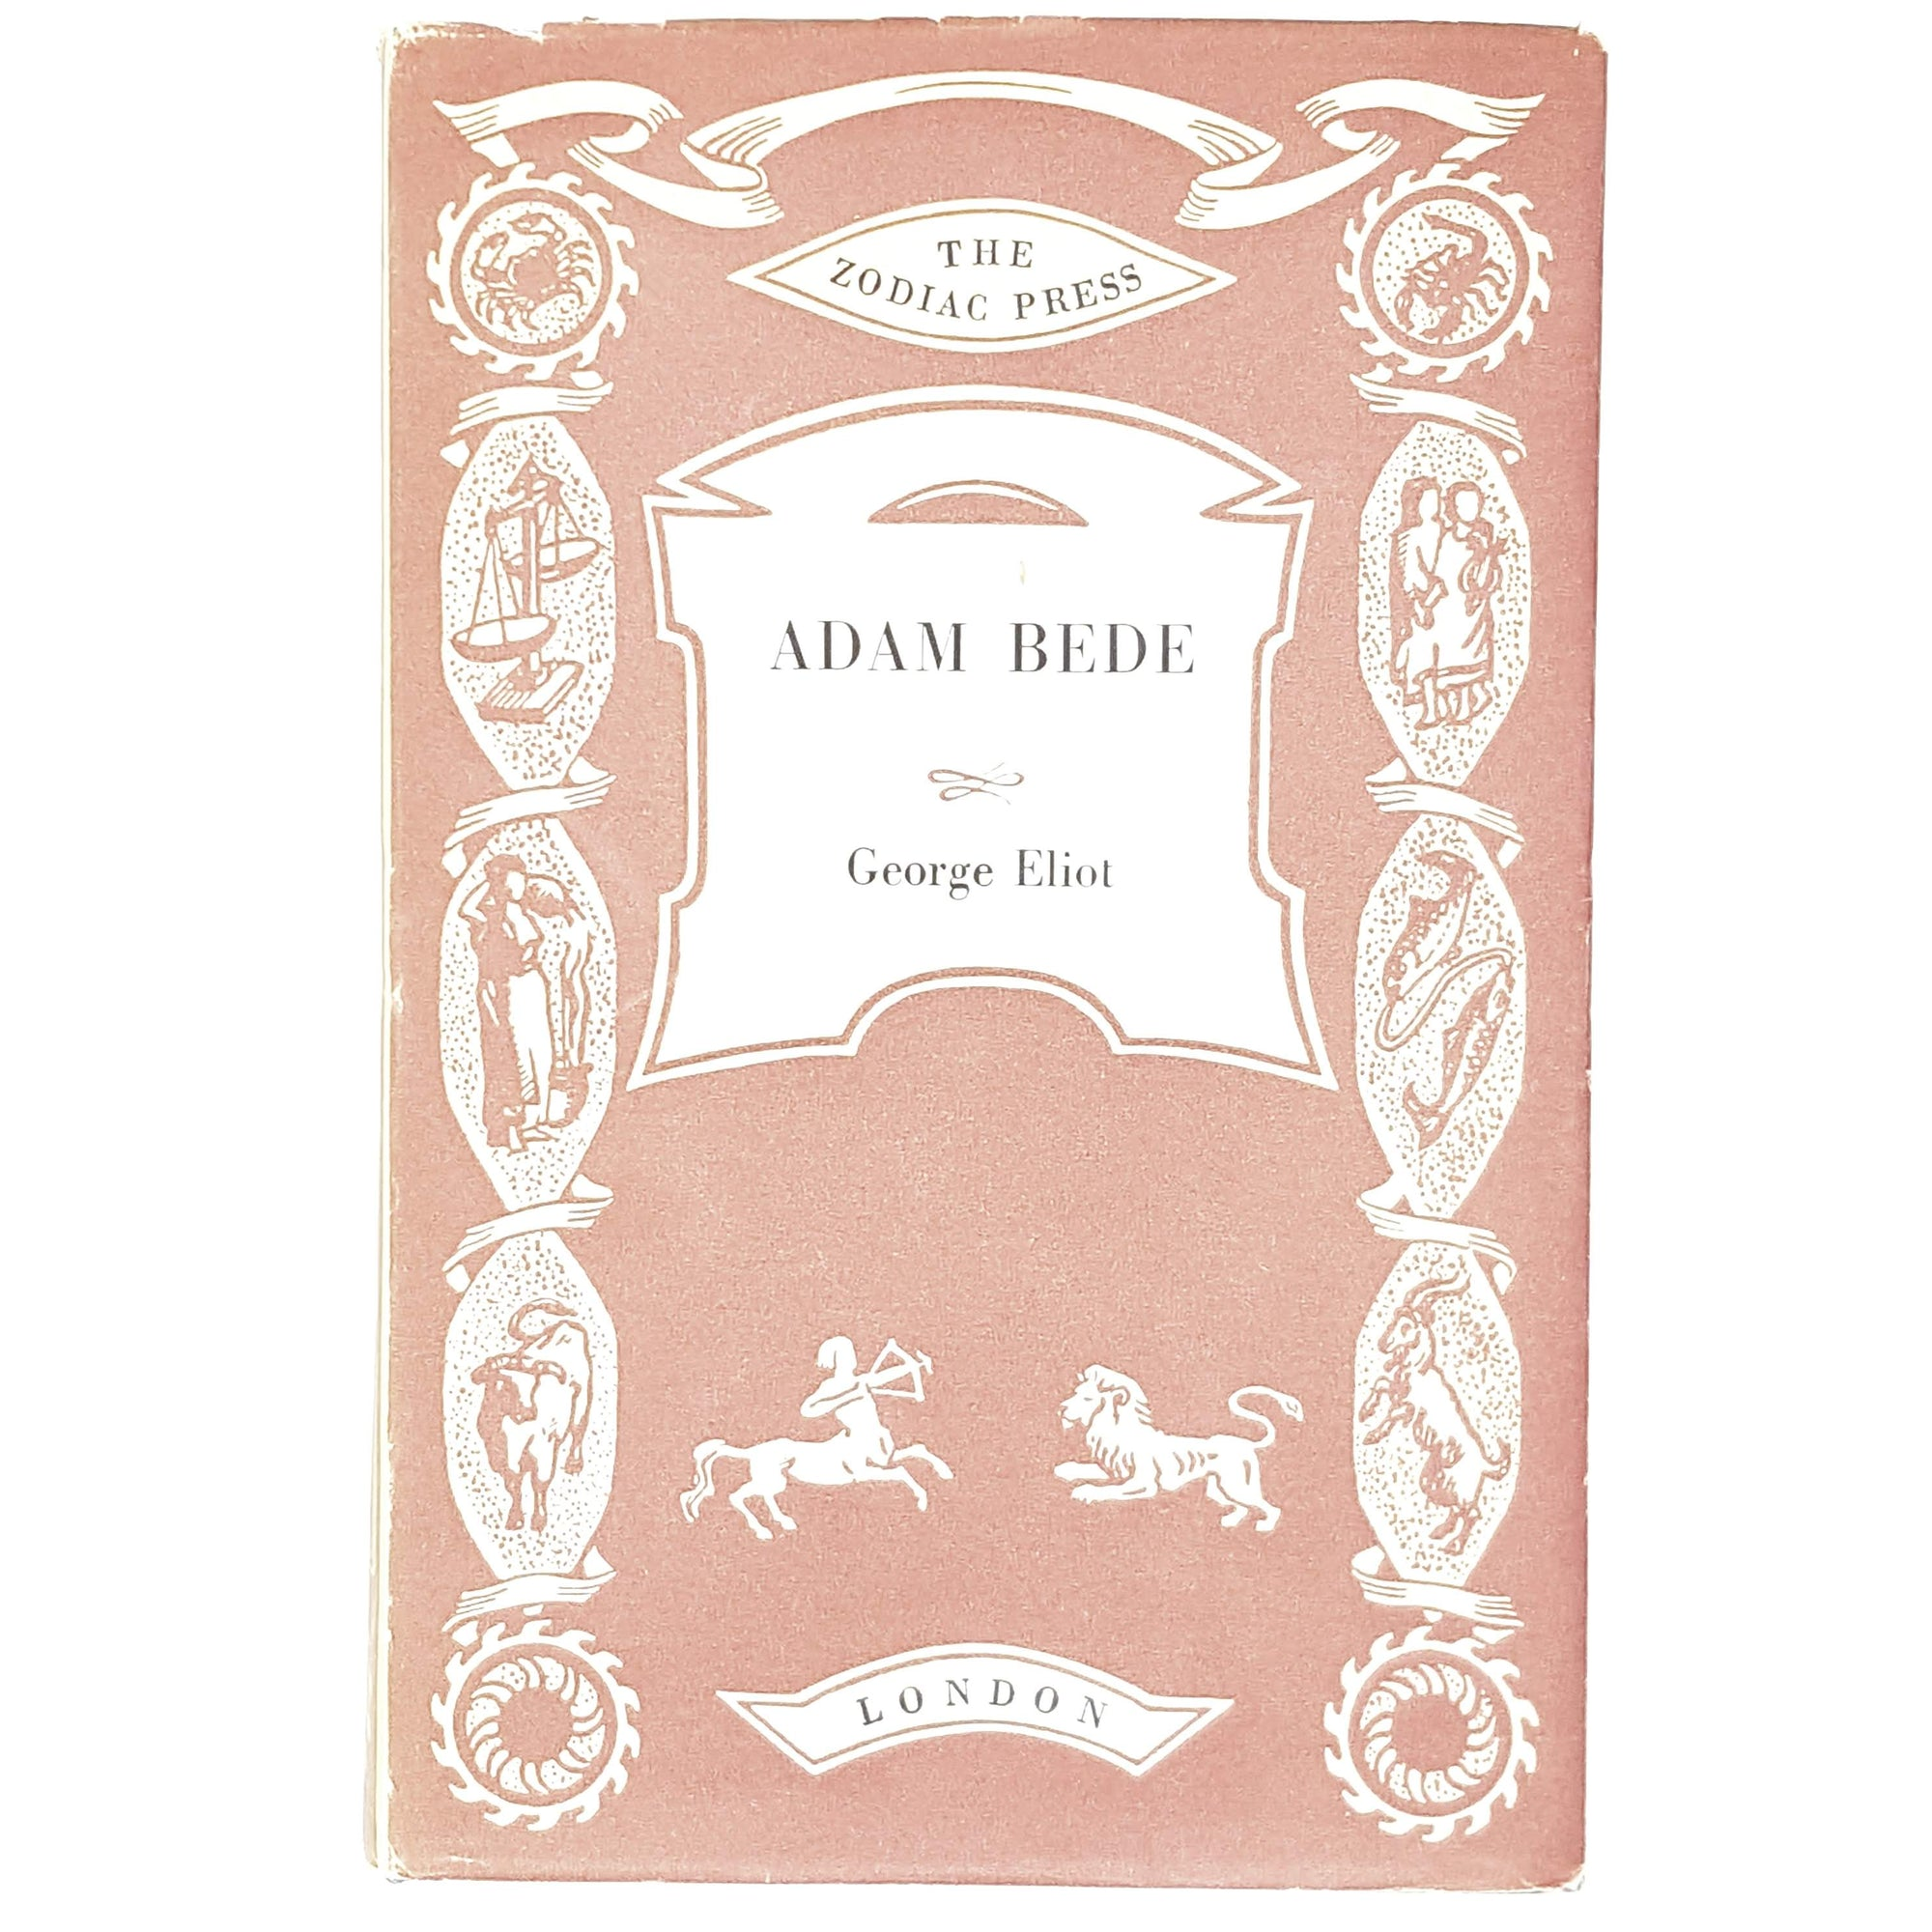 George Eliot's Adam Bede 1962